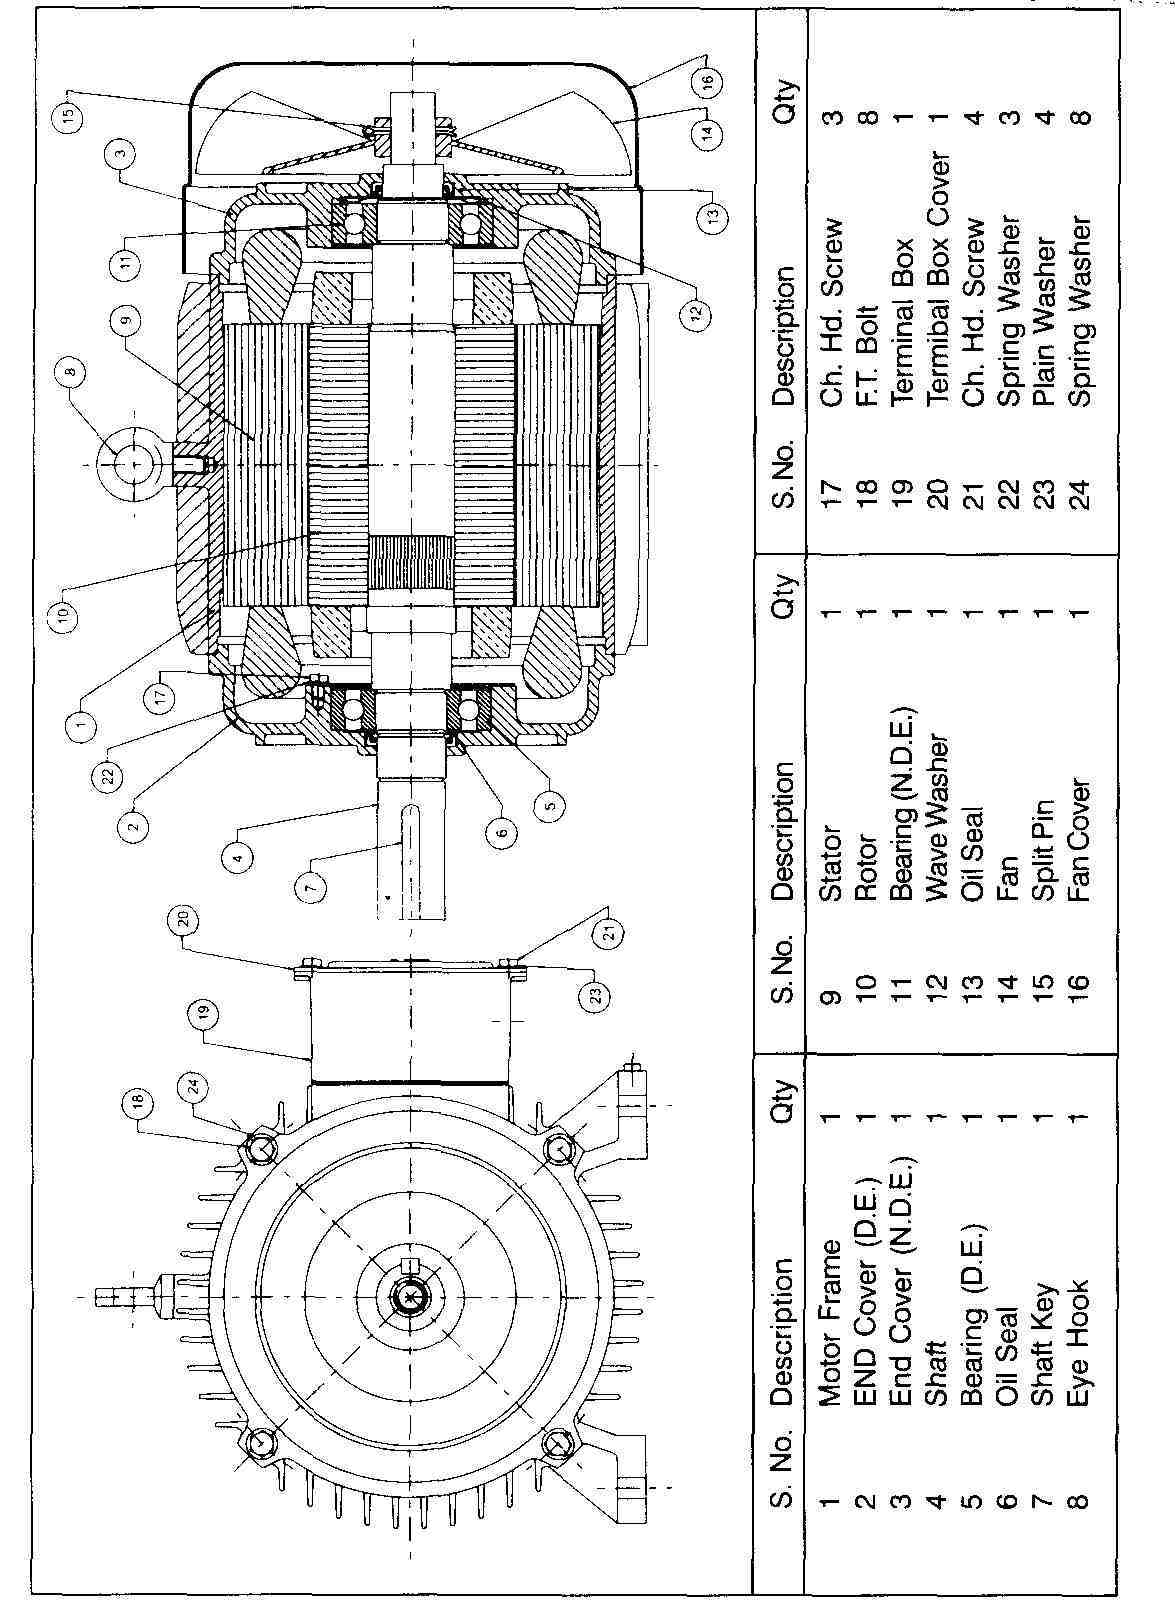 ac electric motor wiring with Electric Motor Drawing on Driving Three Phase Motor On Single likewise Fender Wiring Diagrams Hss Push Pull Diagram Strat Pot   Wiring Diagram also 480428 Trouble Shooting Furnace Fan Only Runs If I Give Push also Electrical in addition Electric motor drawing.